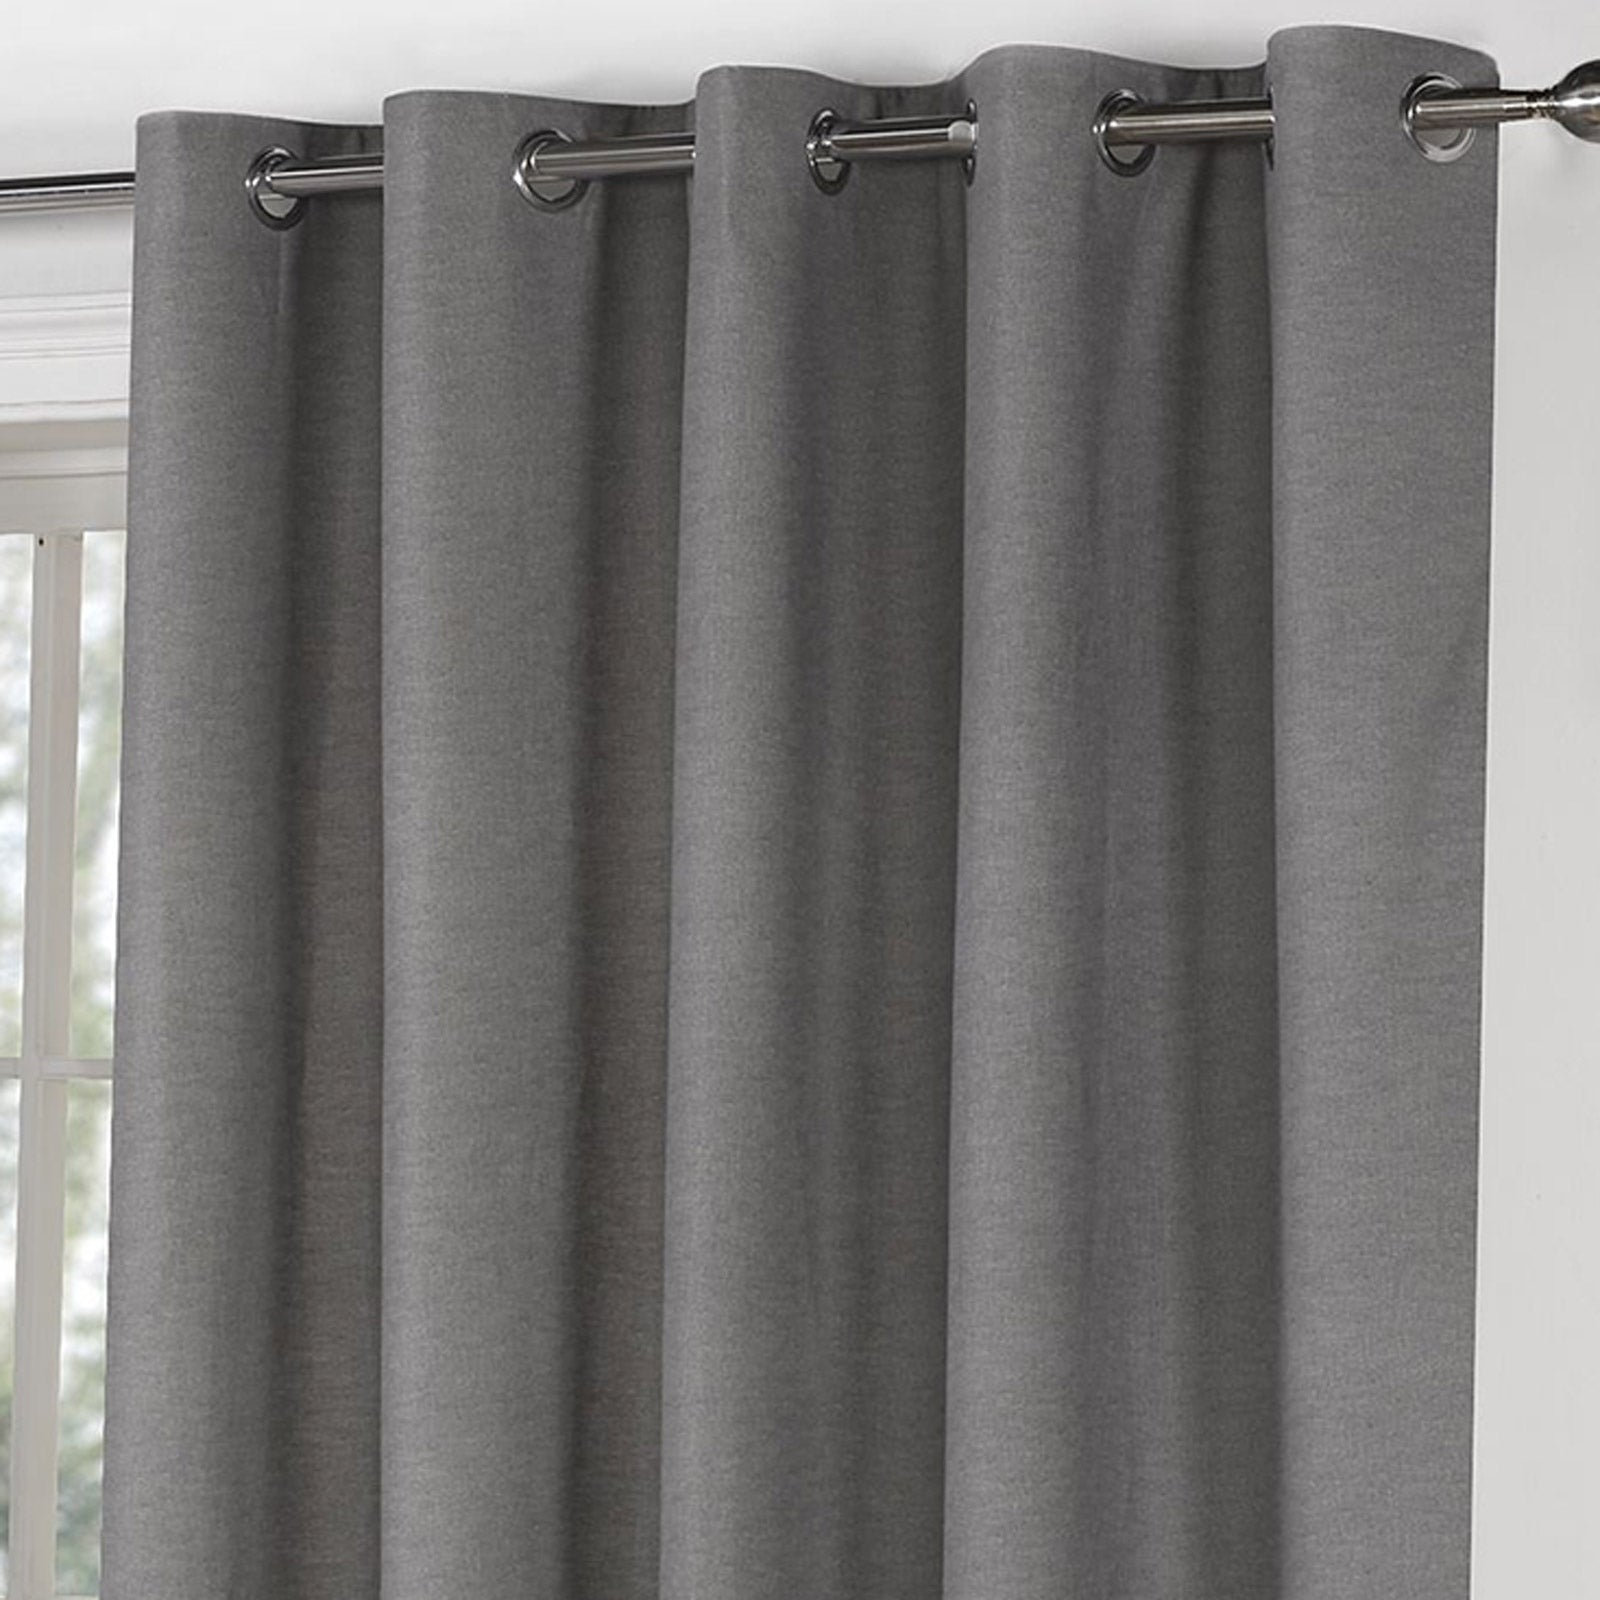 Sorbonne Plain Lined Eyelet Curtains Charcoal -  - Ideal Textiles